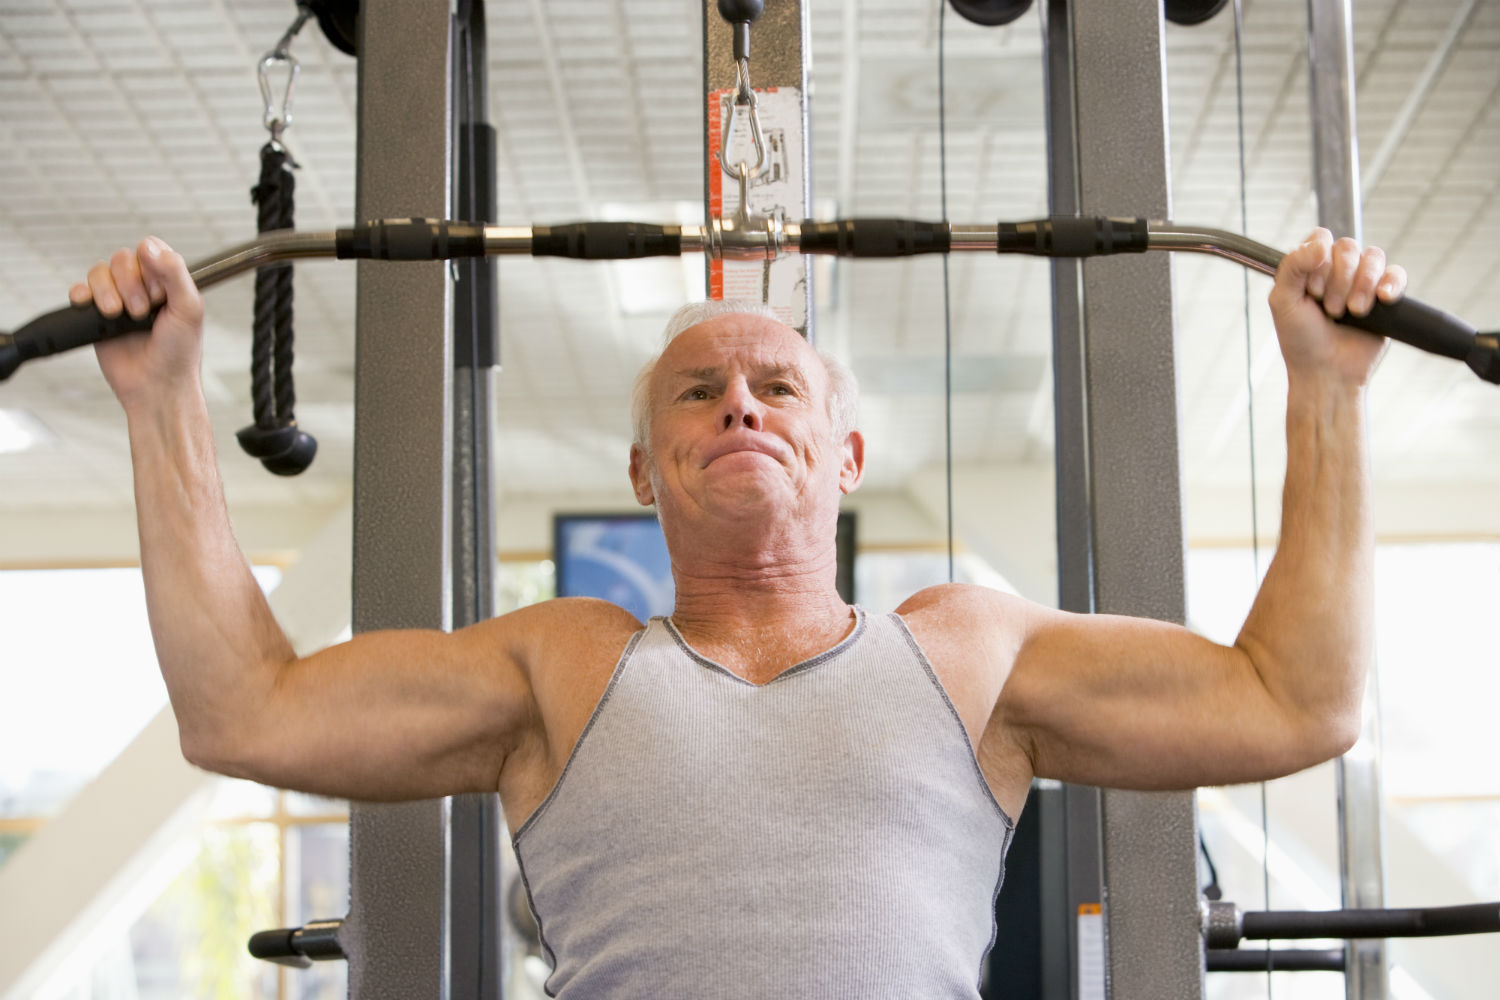 How You Can Improve Your Physical Strength As You Get Older